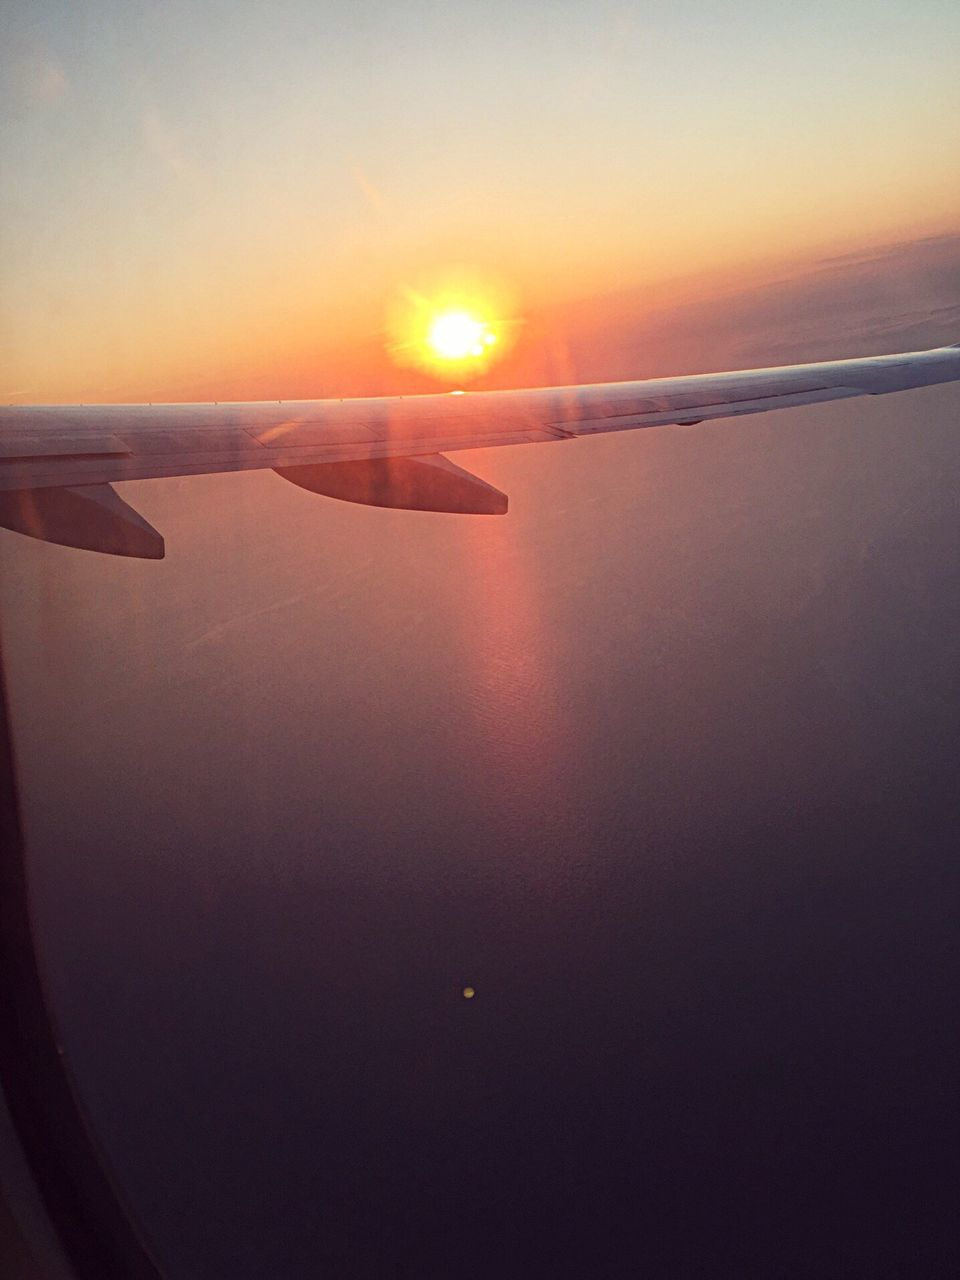 airplane, journey, transportation, sunset, airplane wing, mode of transport, nature, air vehicle, sun, scenics, travel, no people, beauty in nature, sky, aerial view, tranquil scene, tranquility, aircraft wing, outdoors, flying, landscape, water, sea, vehicle part, close-up, day